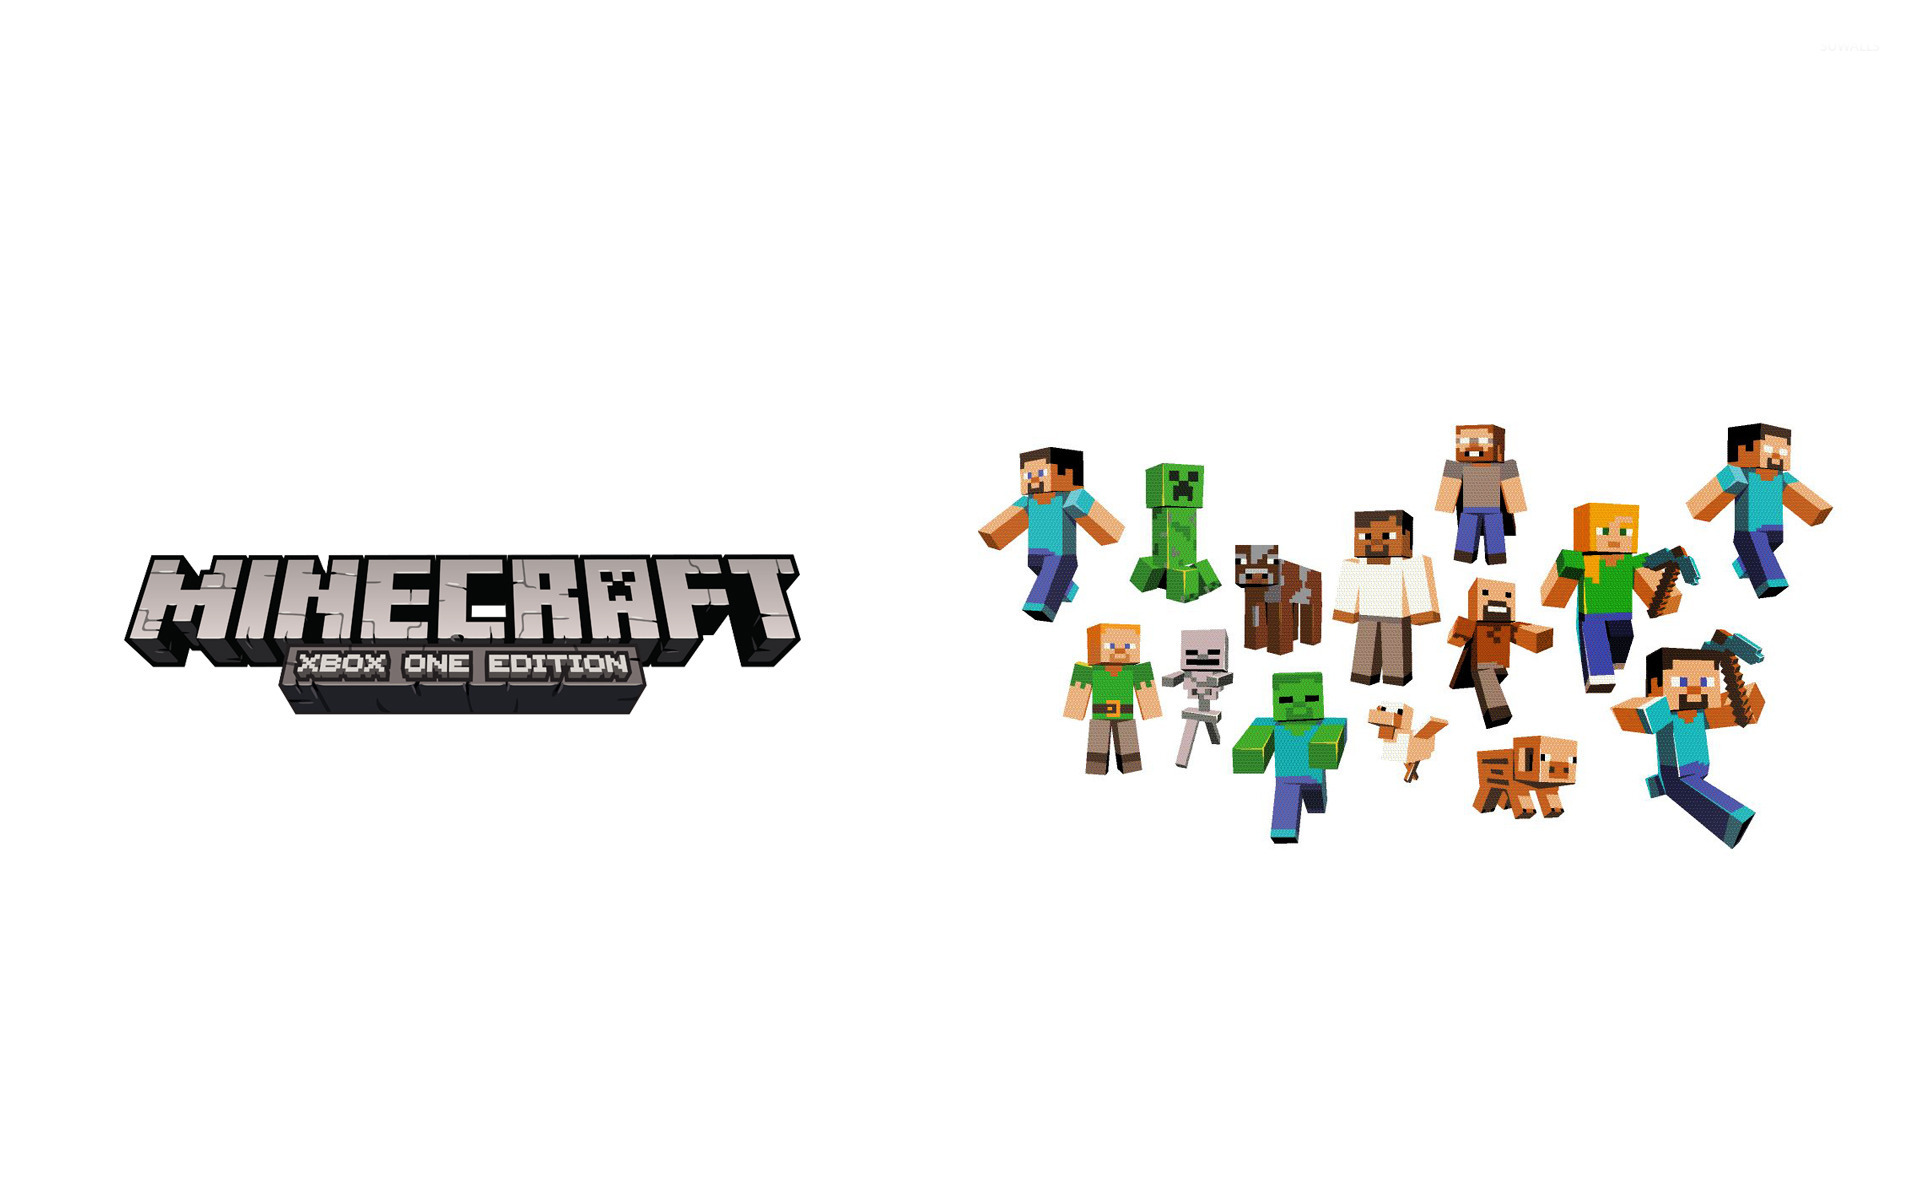 minecraft xbox one edition 3 wallpaper game wallpapers